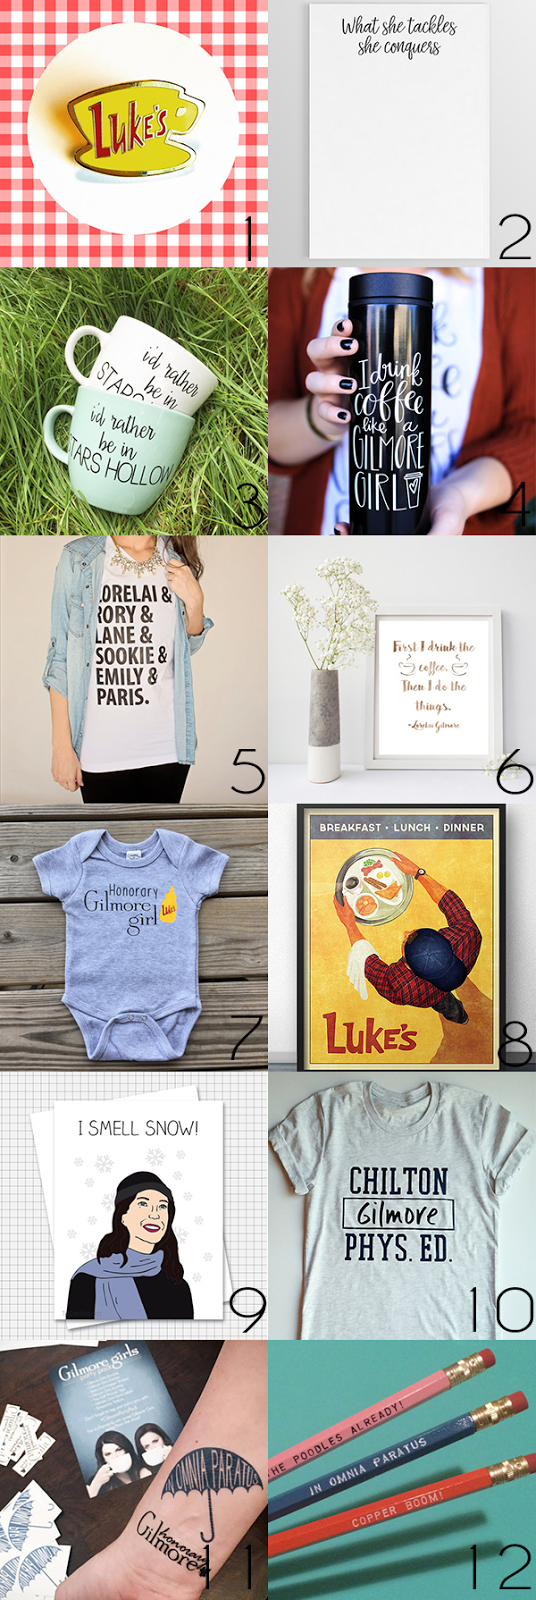 12 Etsy gift ideas for Gilmore Girls fans